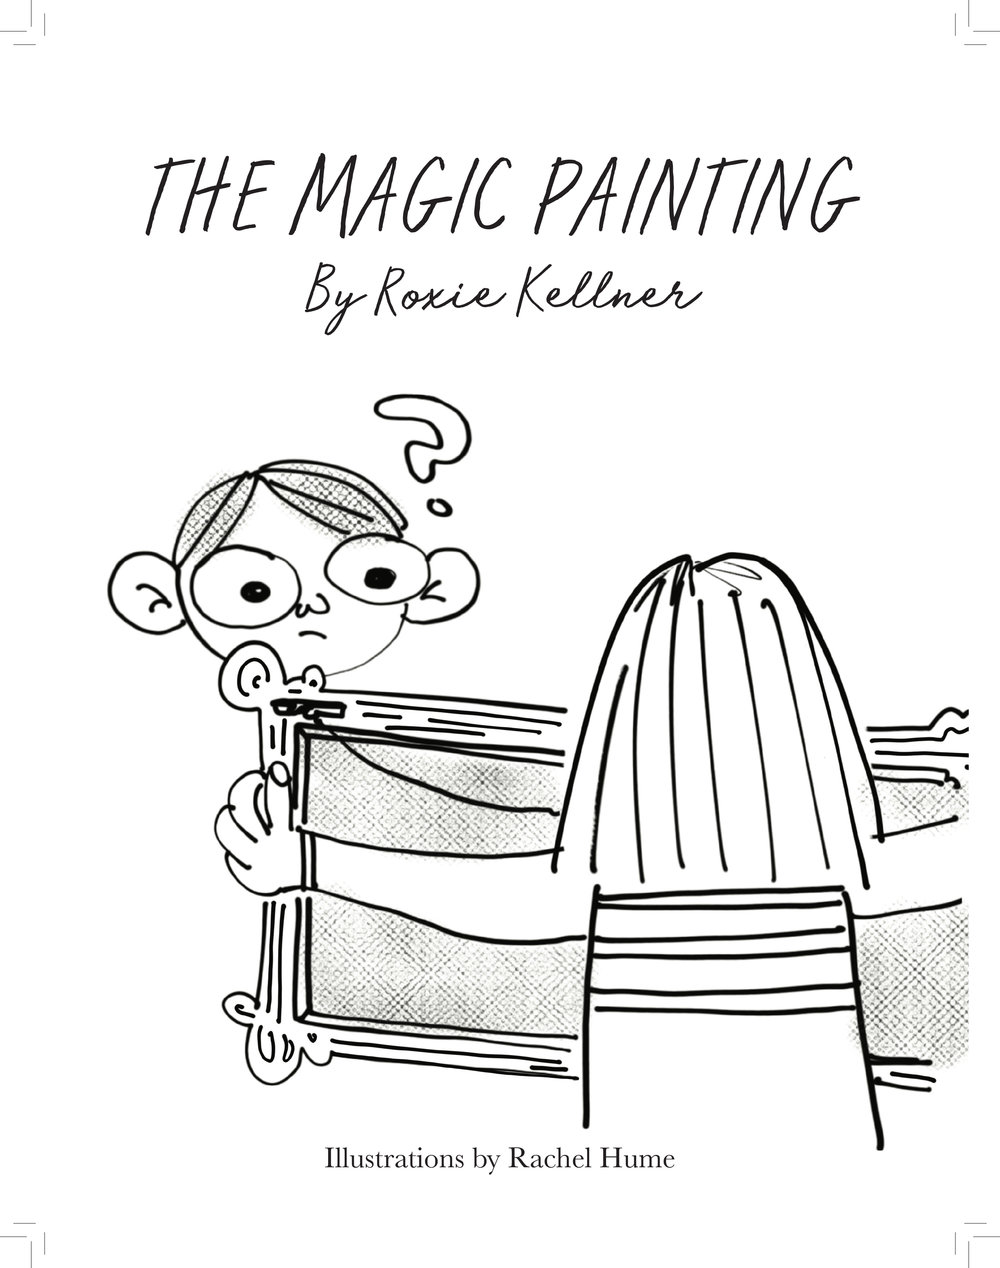 The Magic Painting Cover.jpg